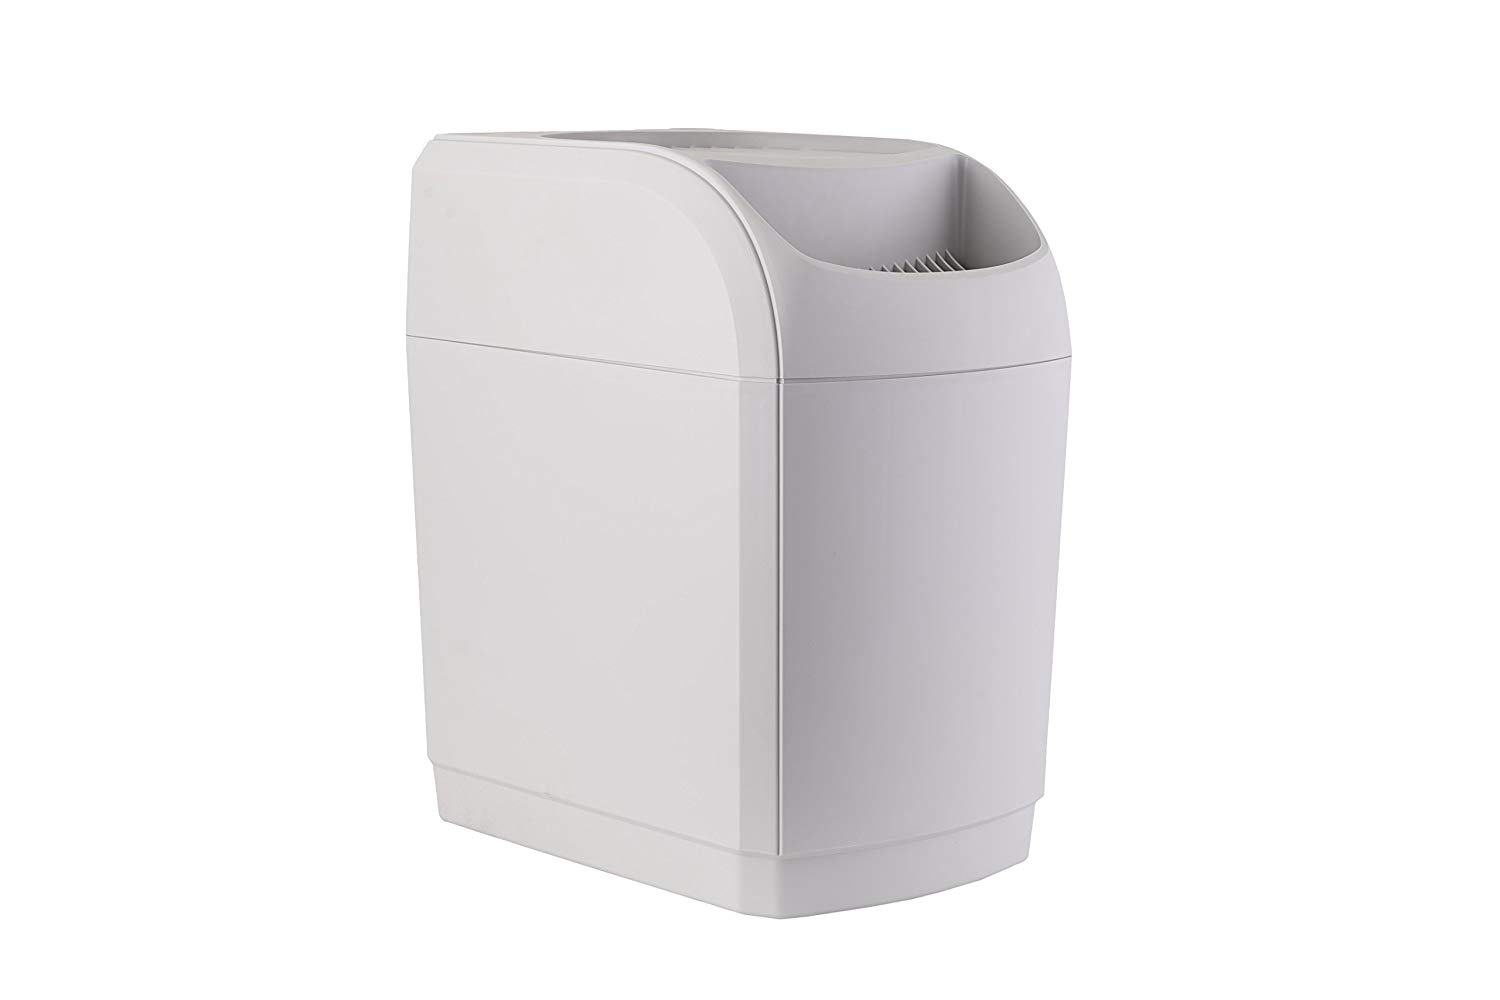 AIRCARE 831000 Space-Saver, White Whole House Evaporative Humidifier